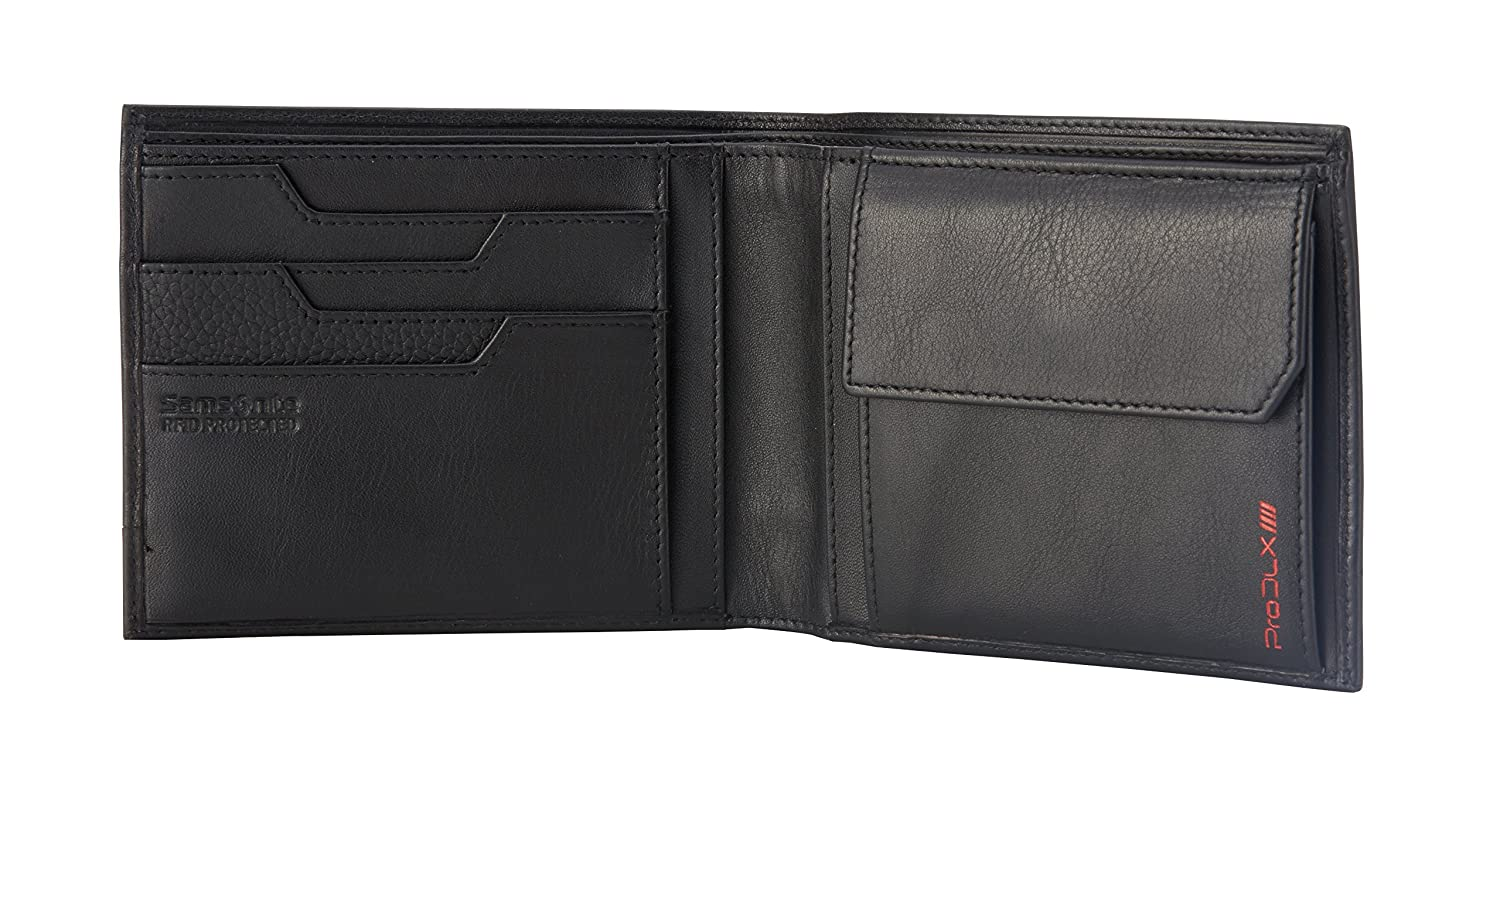 Samsonite Prod-DLX 4s RFID Billfold 8cc+2comp 4cc+2comp+c Holder Monedero, 14 cm, Negro